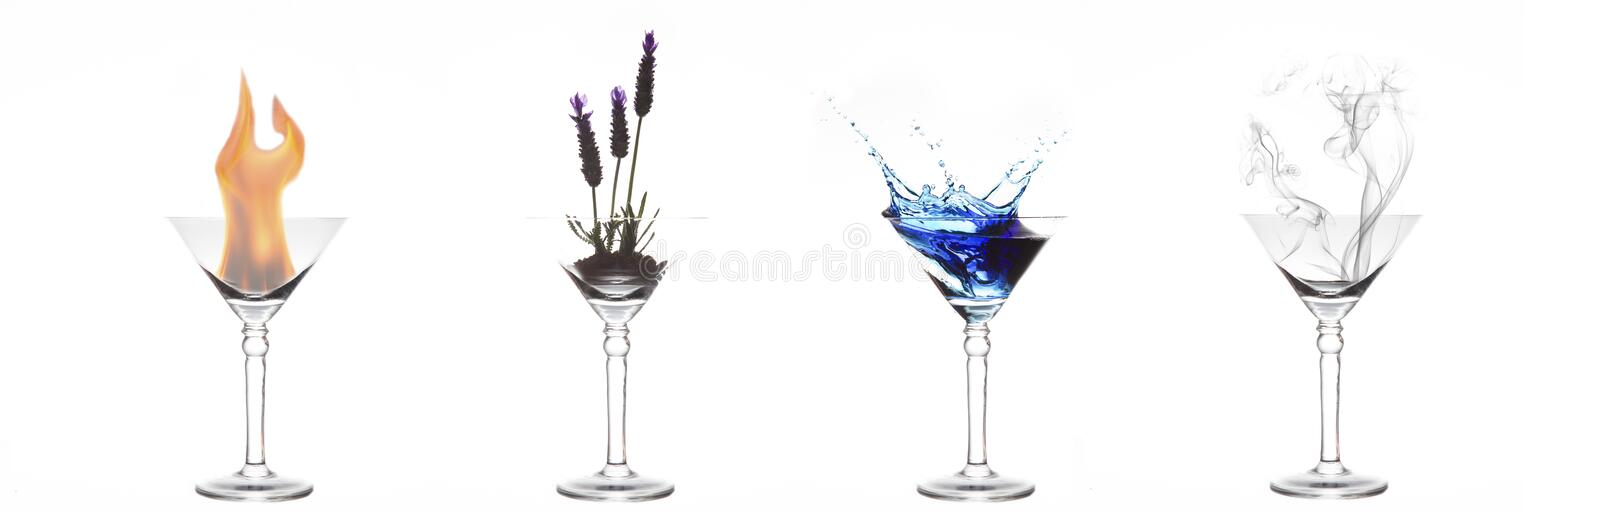 Four elements of fire, plant, water and air in martini glasses royalty free stock photo